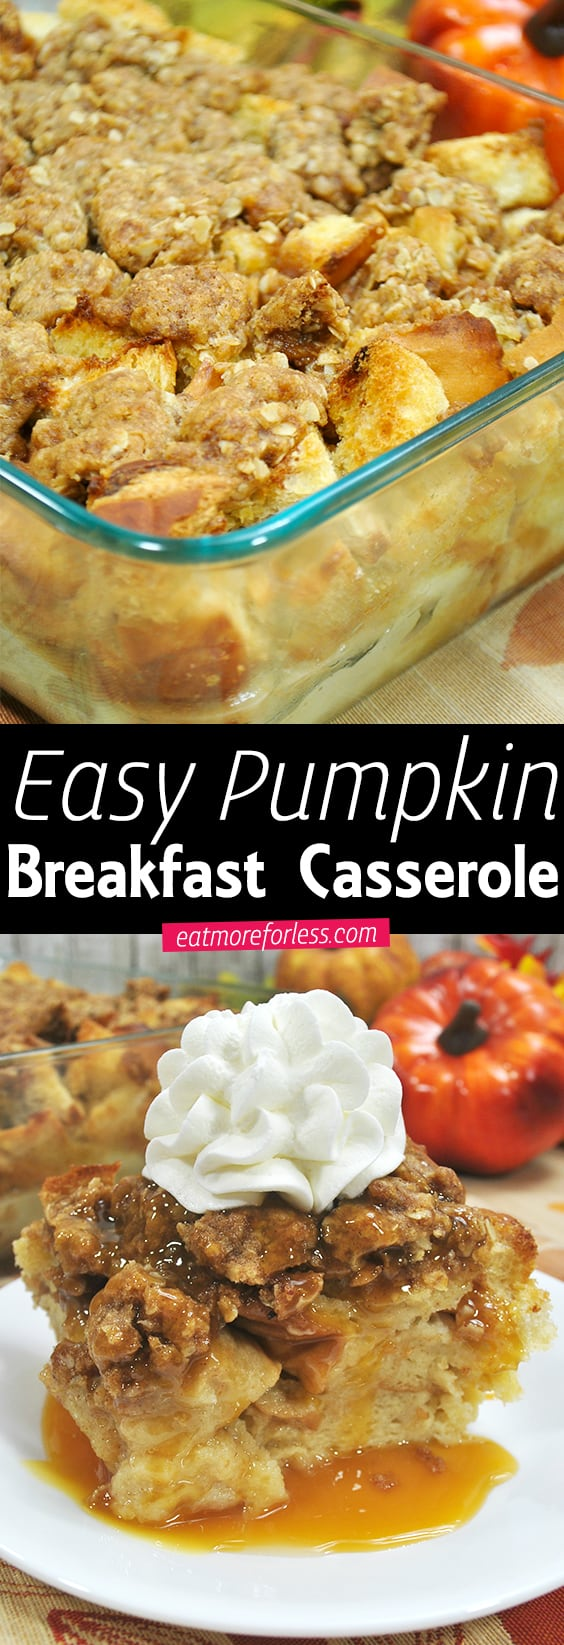 Pumpkin Breakfast Casserole